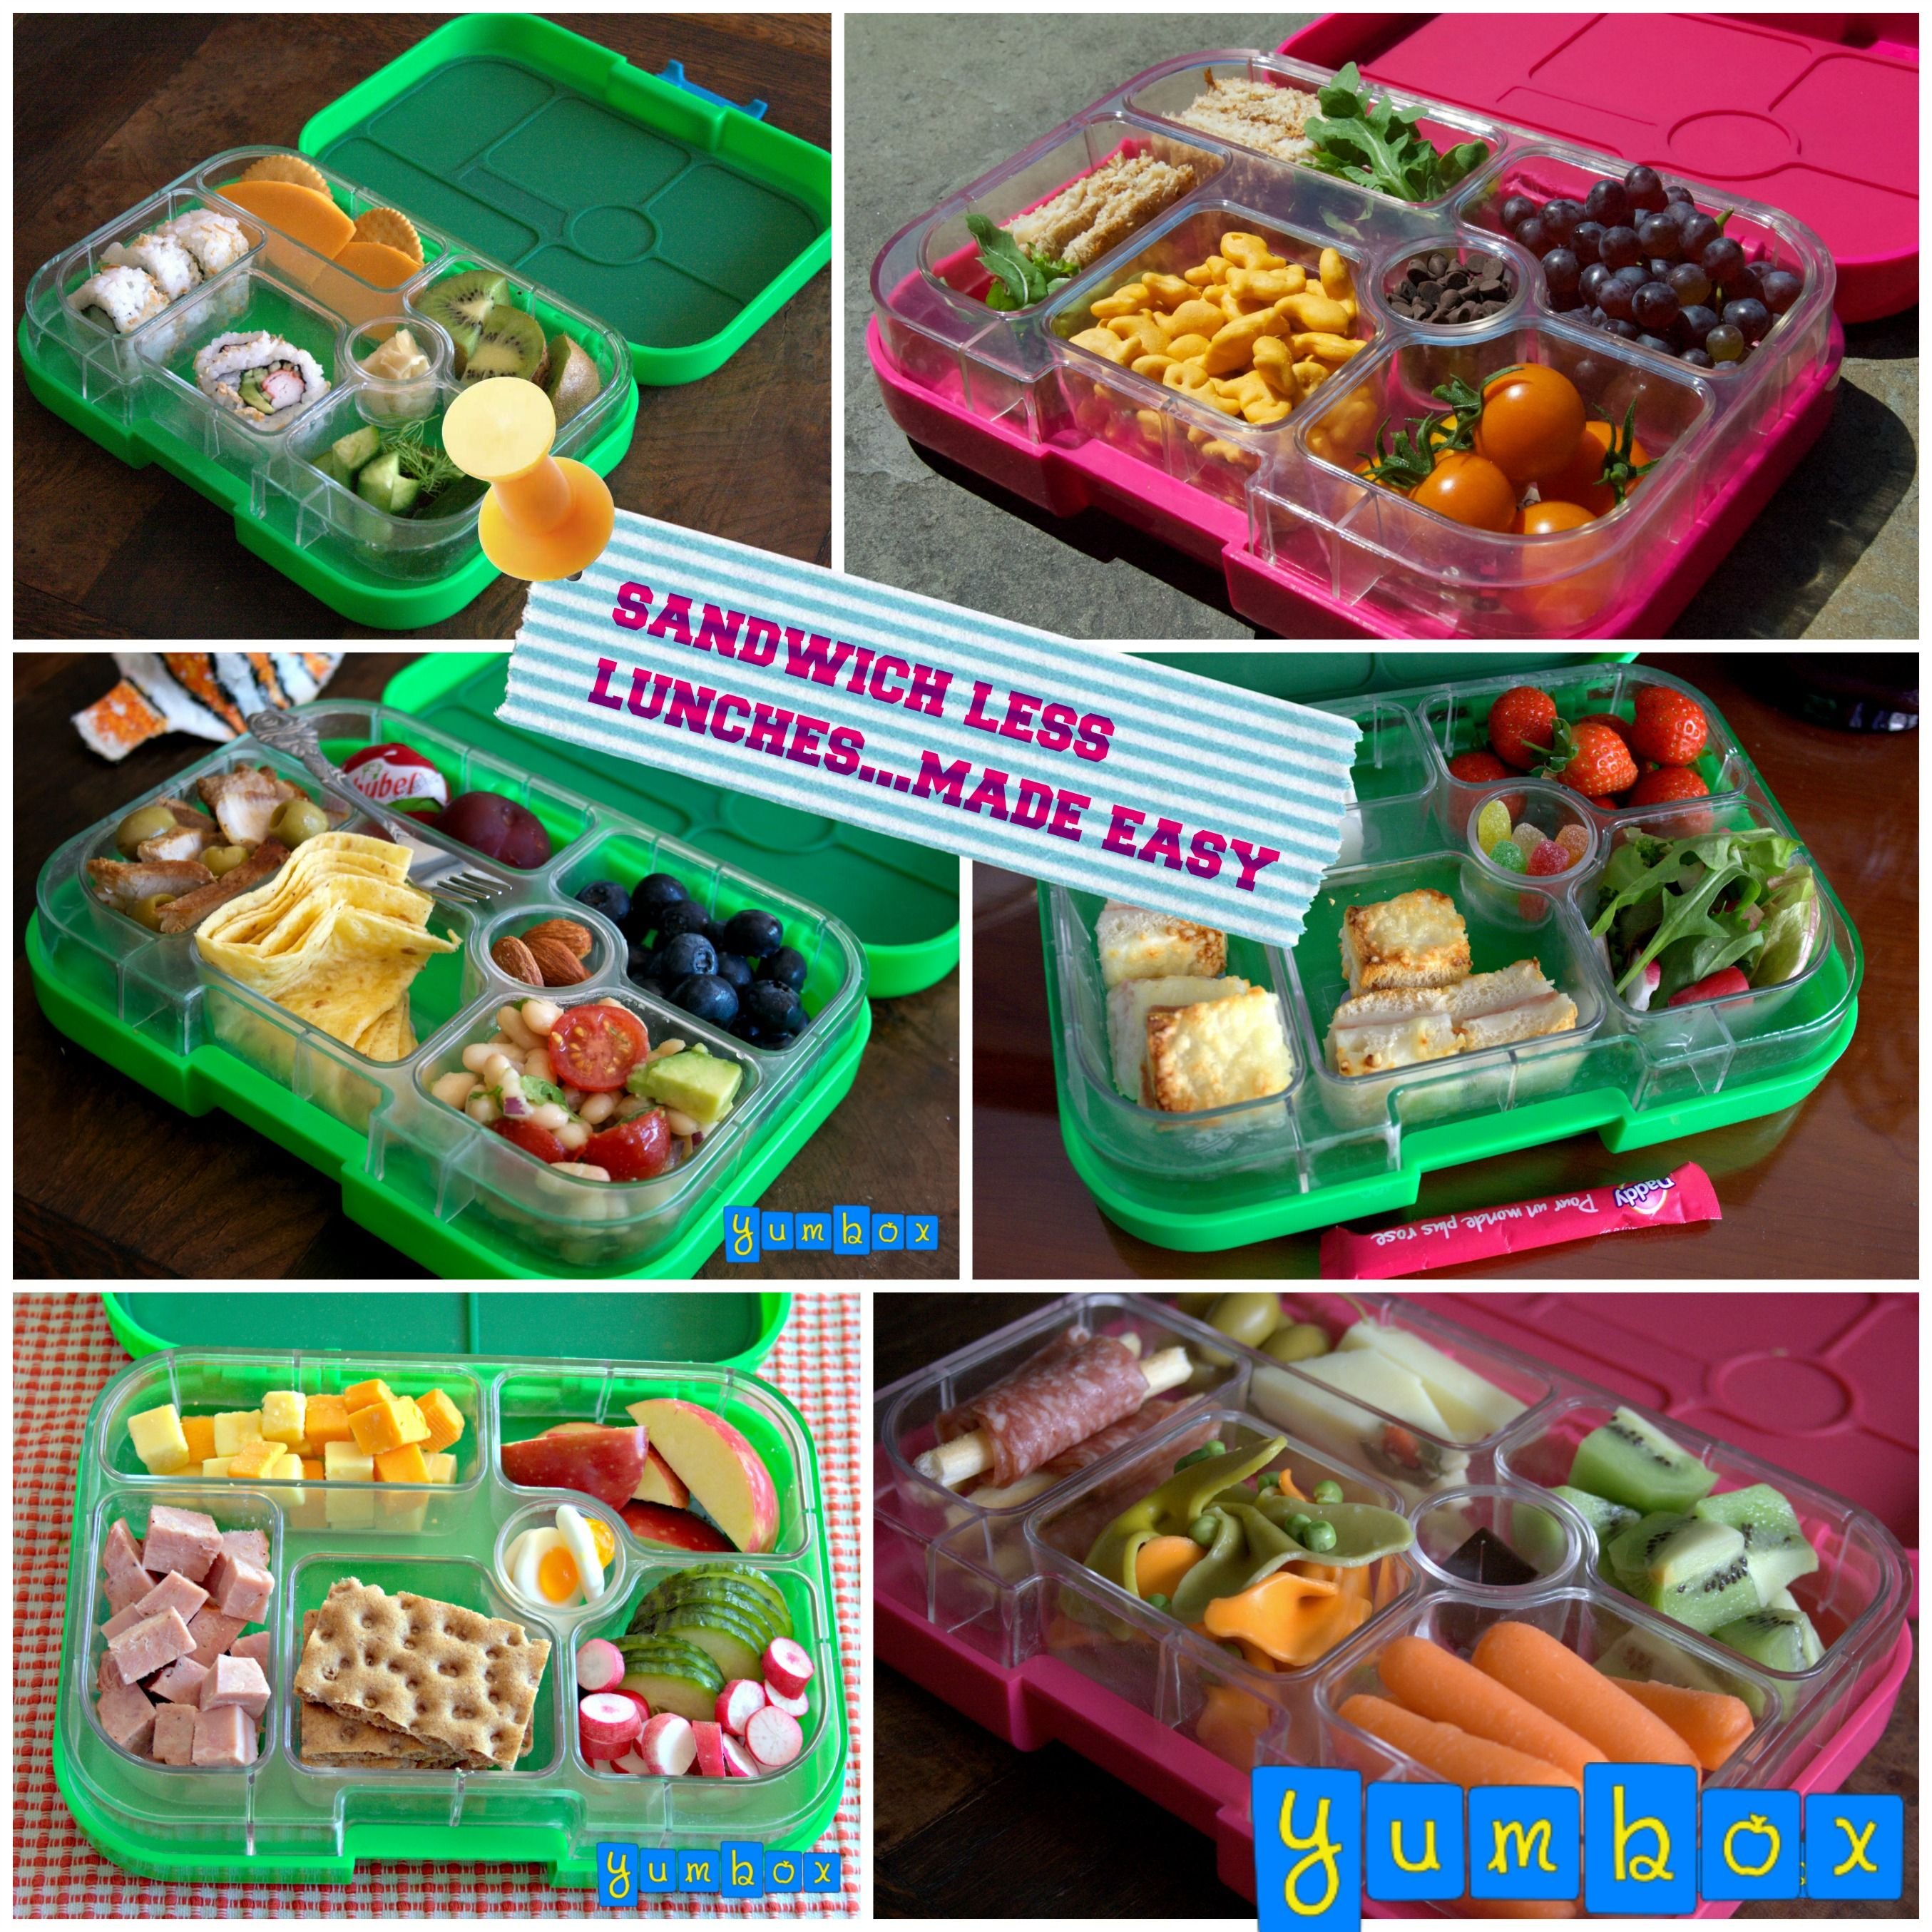 Yumbox Ideen Kindergarten Yumbox Lunch Ideas Kids Bento Sandwich Free Lunches Made Easy With Yumbox Coolest Lunchbox Ever